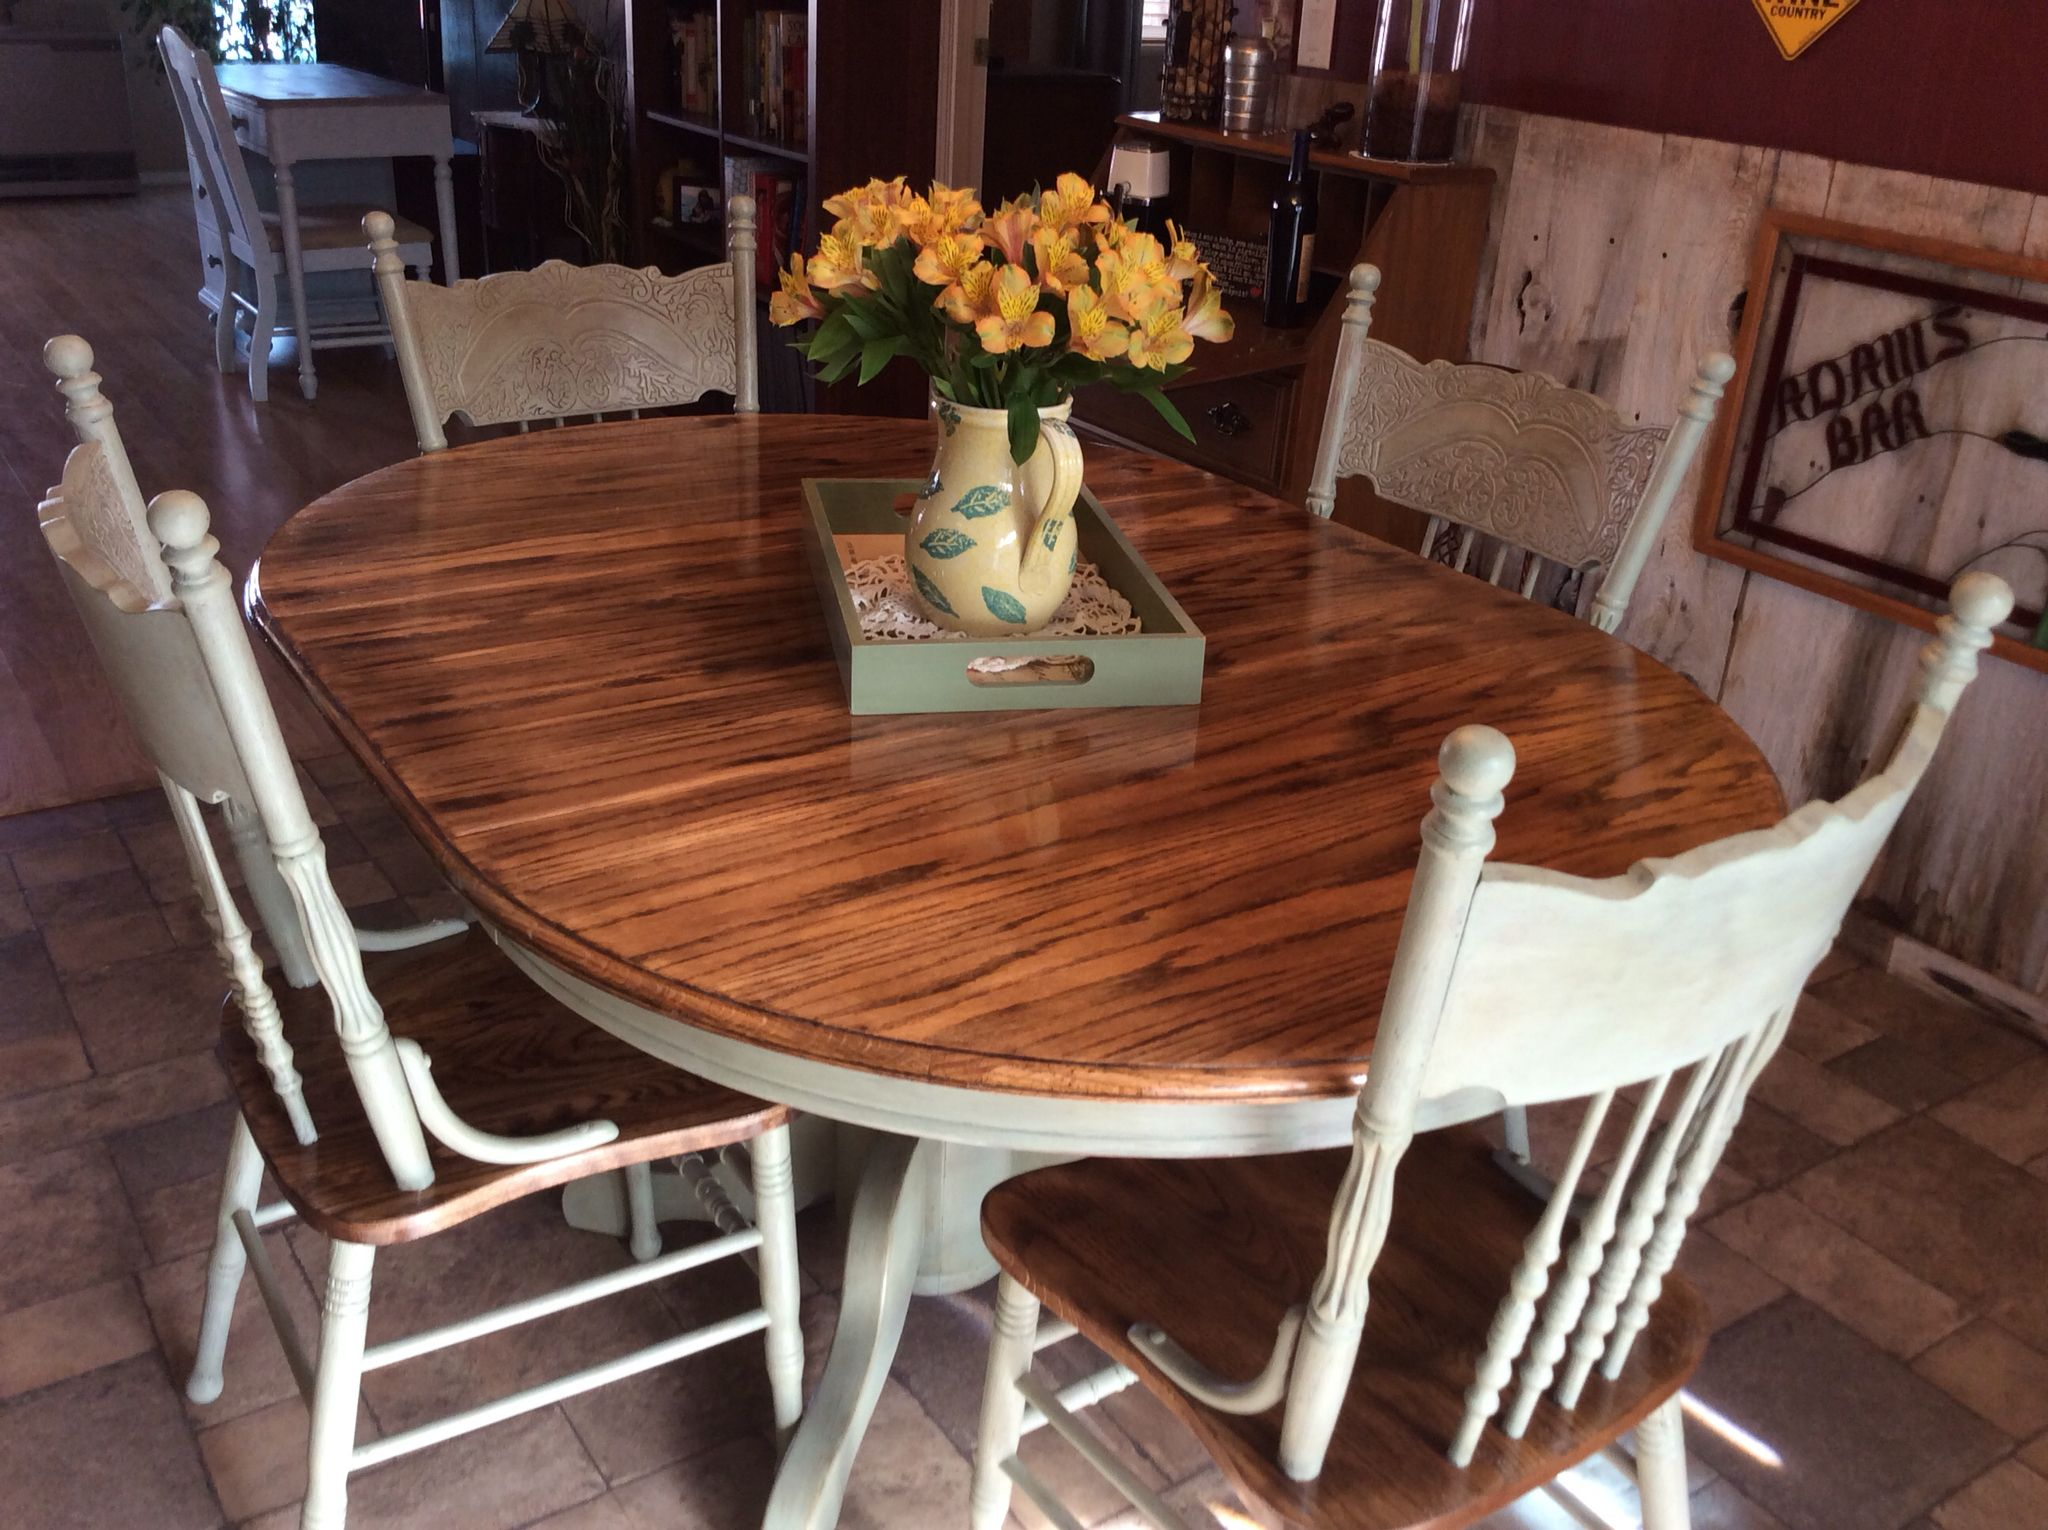 Oak Table And Chairs For Kitchen I rescued and restored this beautiful solid oak table and chairs i rescued and restored this beautiful solid oak table and chairs with amy howard one step paint in lou lou waxed with light and dark antique wax workwithnaturefo